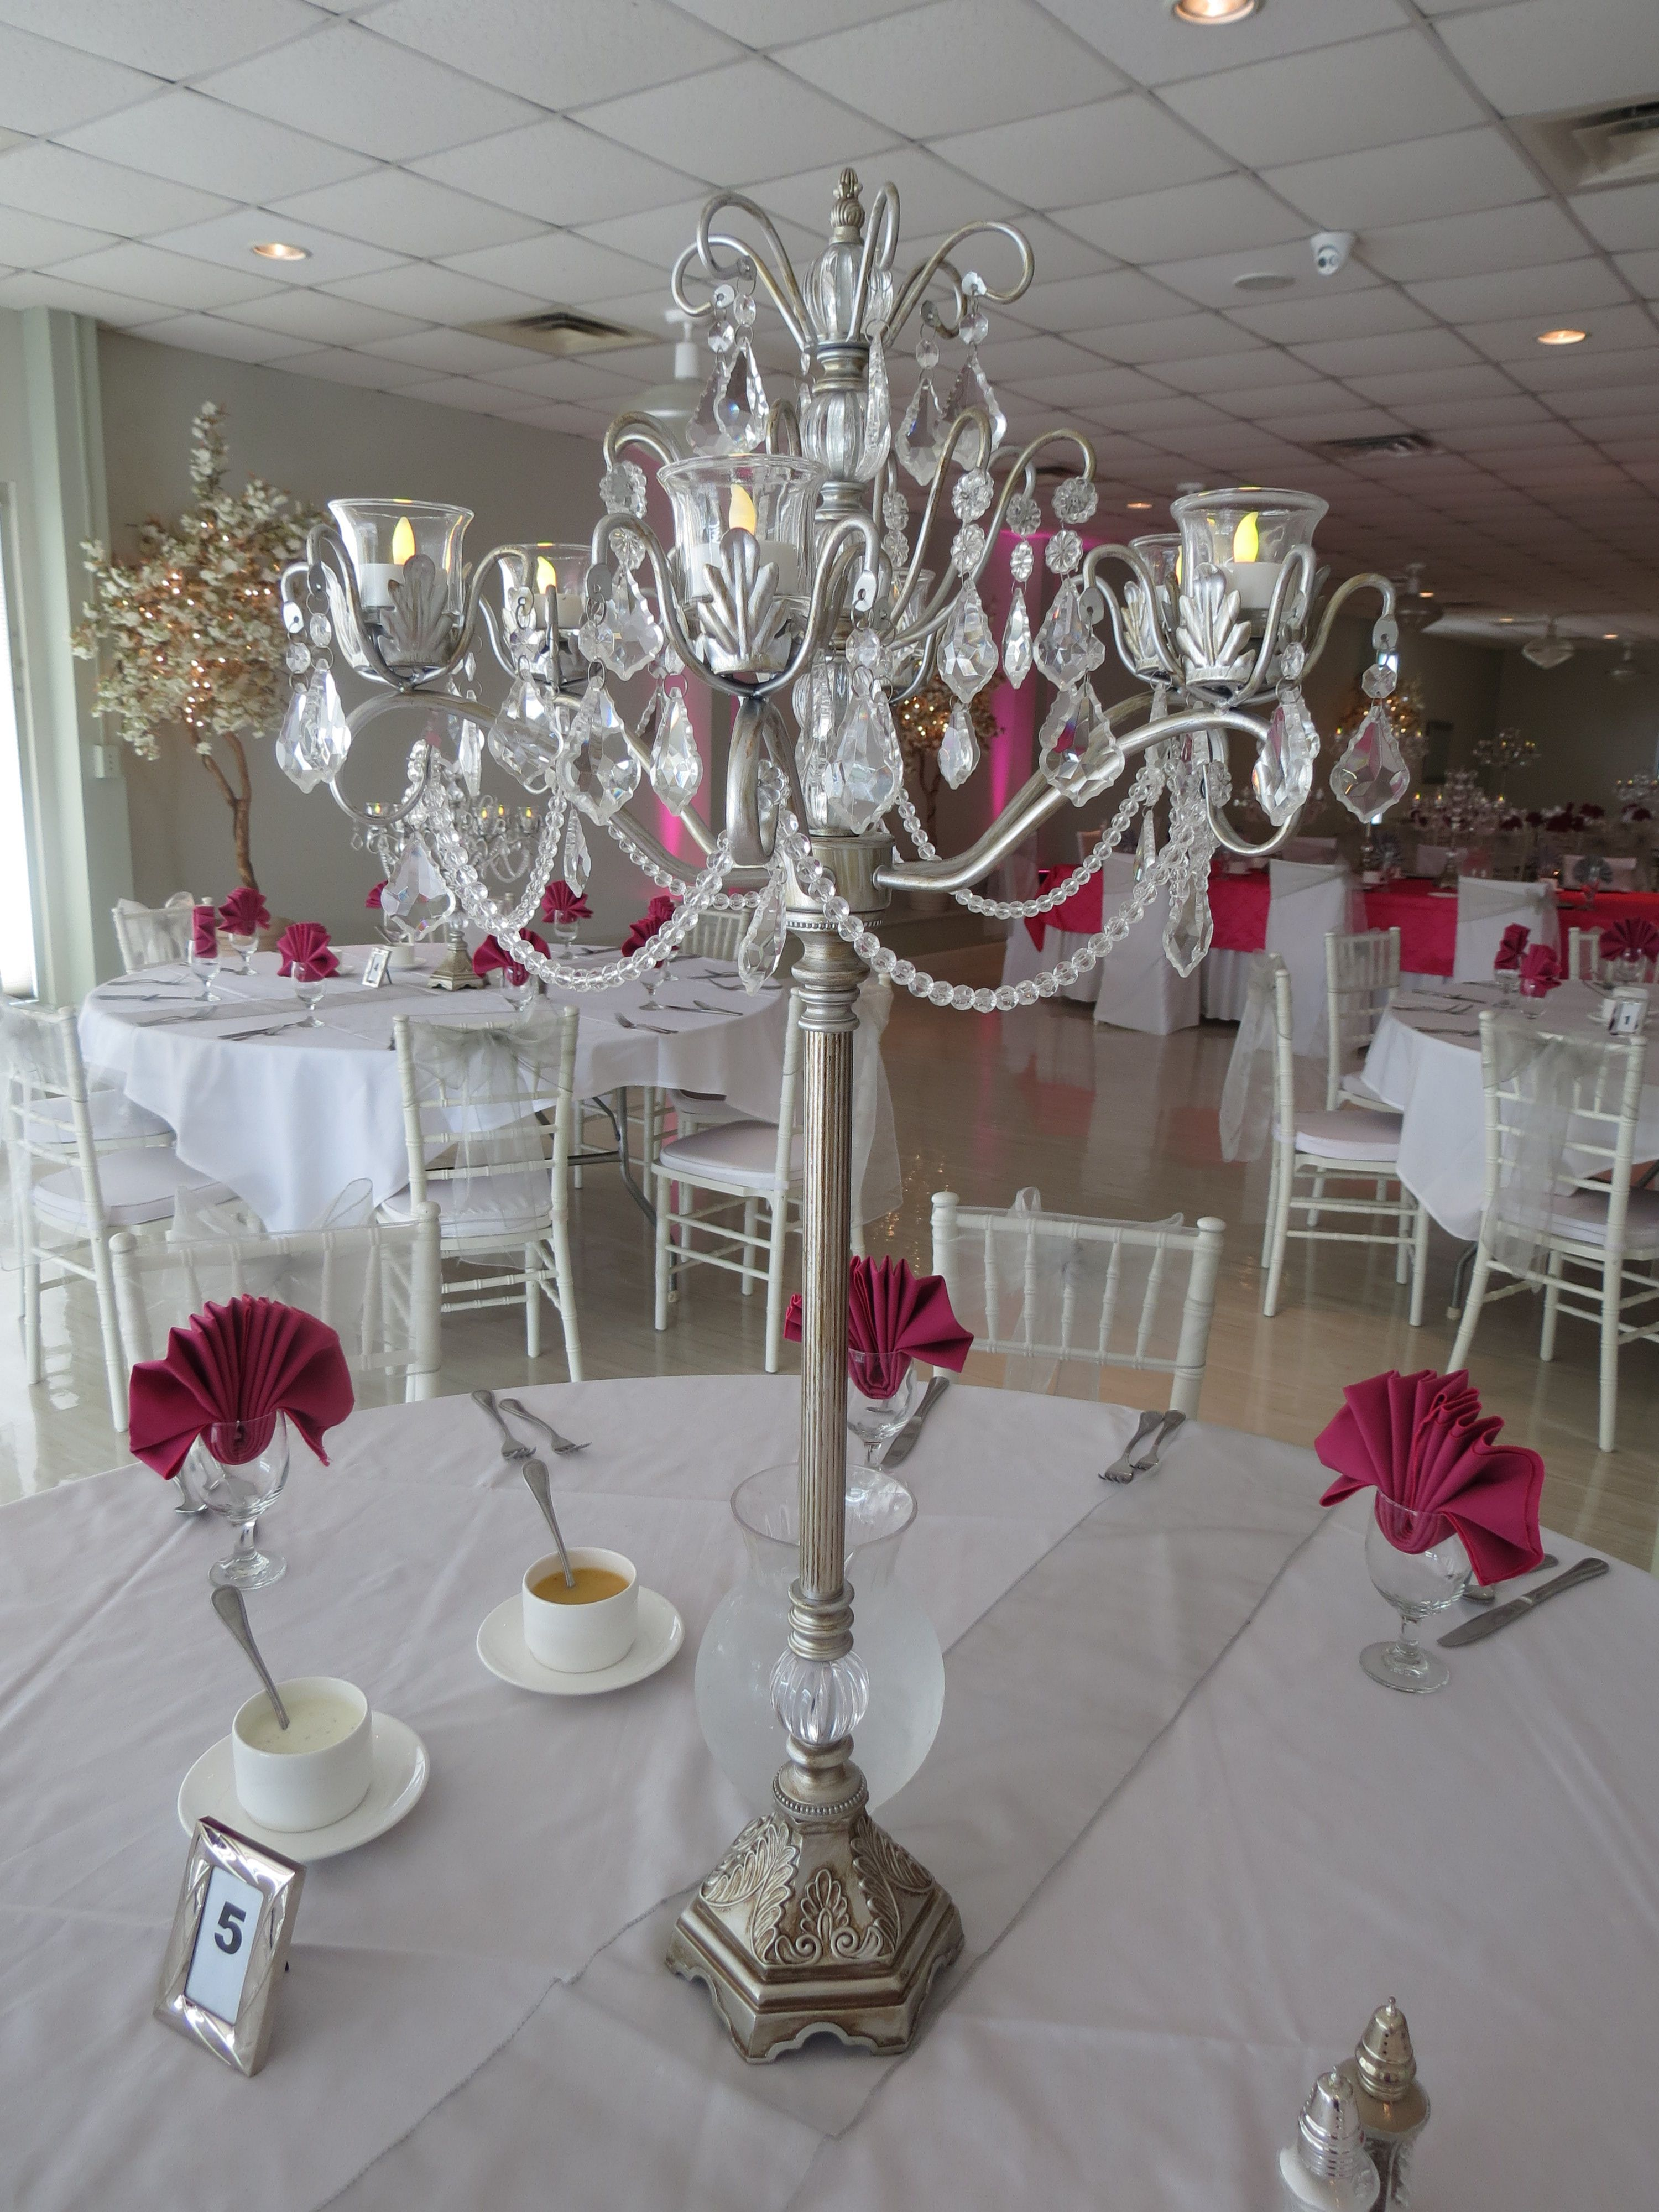 Antiqued Silver Chandelier Centerpieces with Hot Pink Napkins